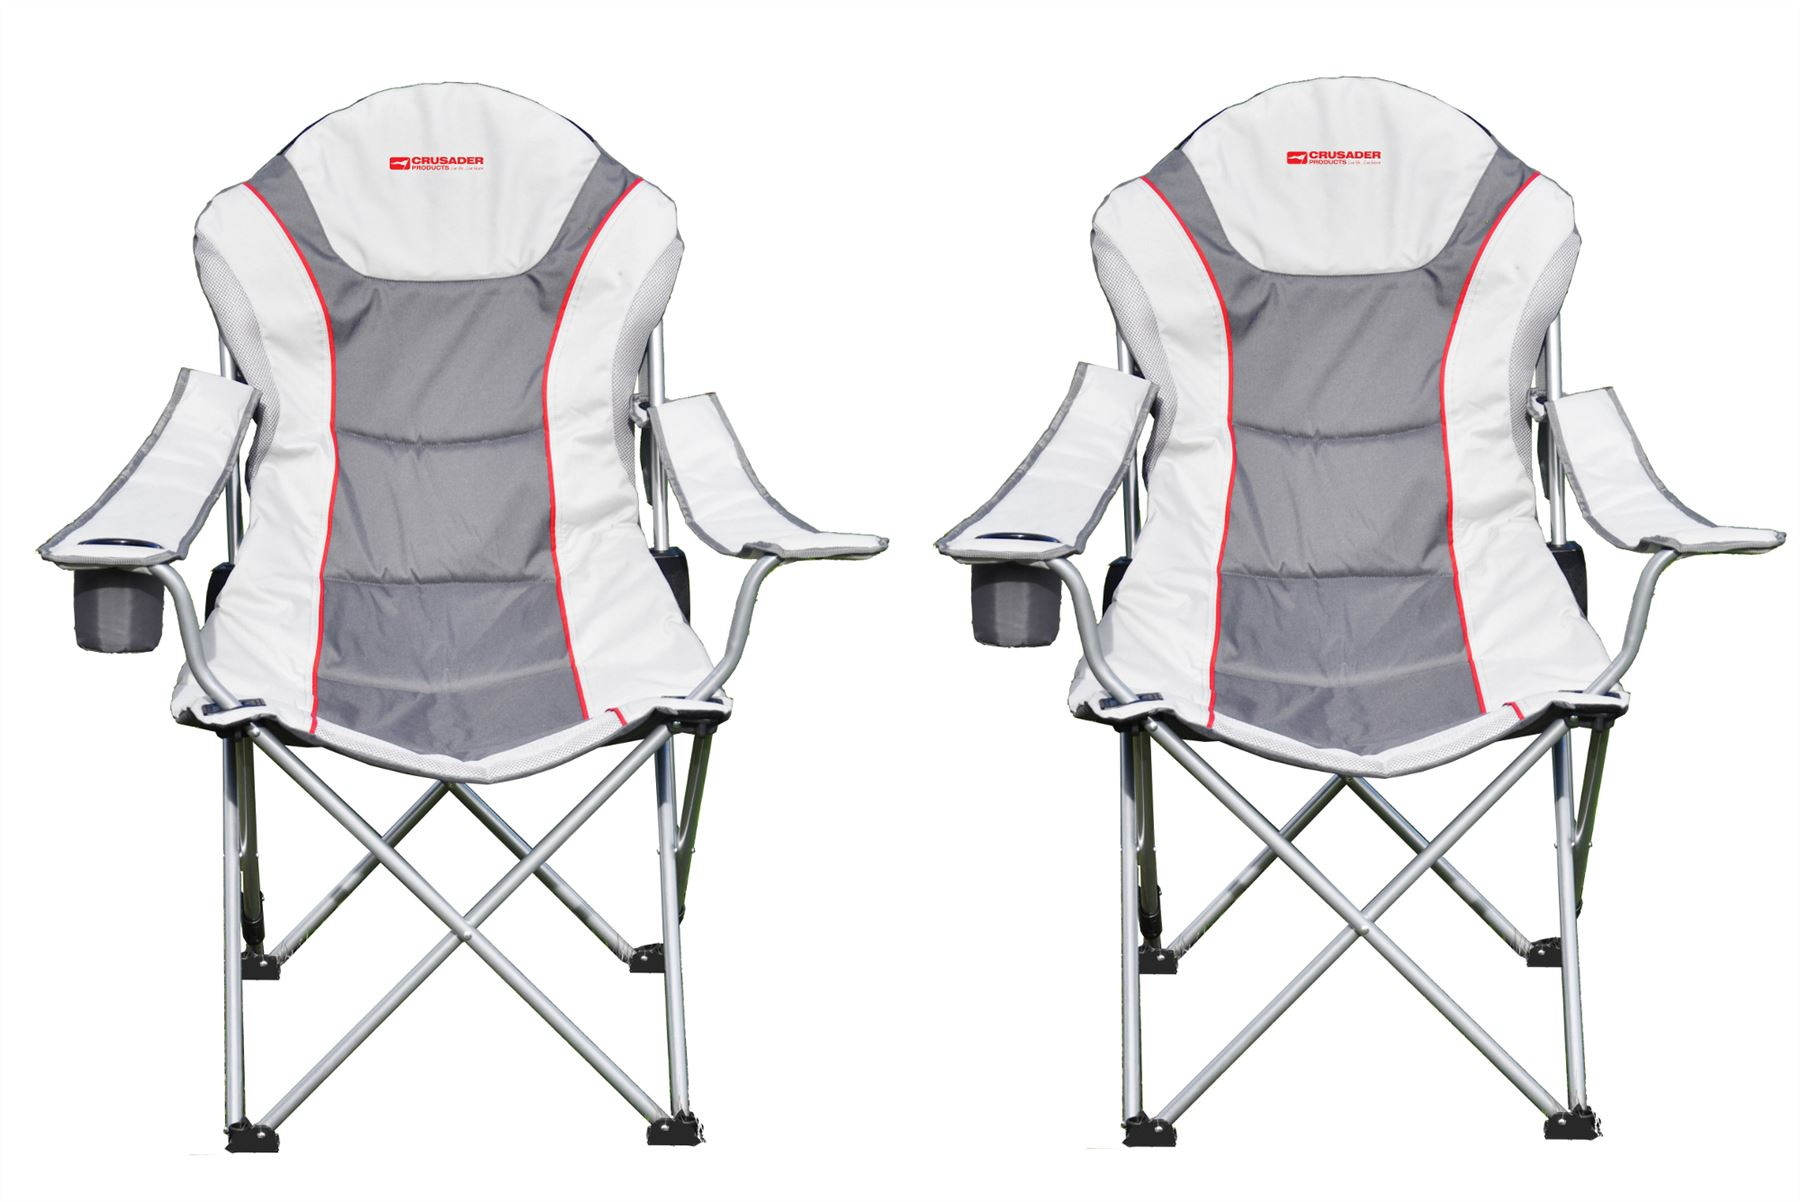 portable directors chair 2 old barber chairs 2x heavy duty royal padded folding camping